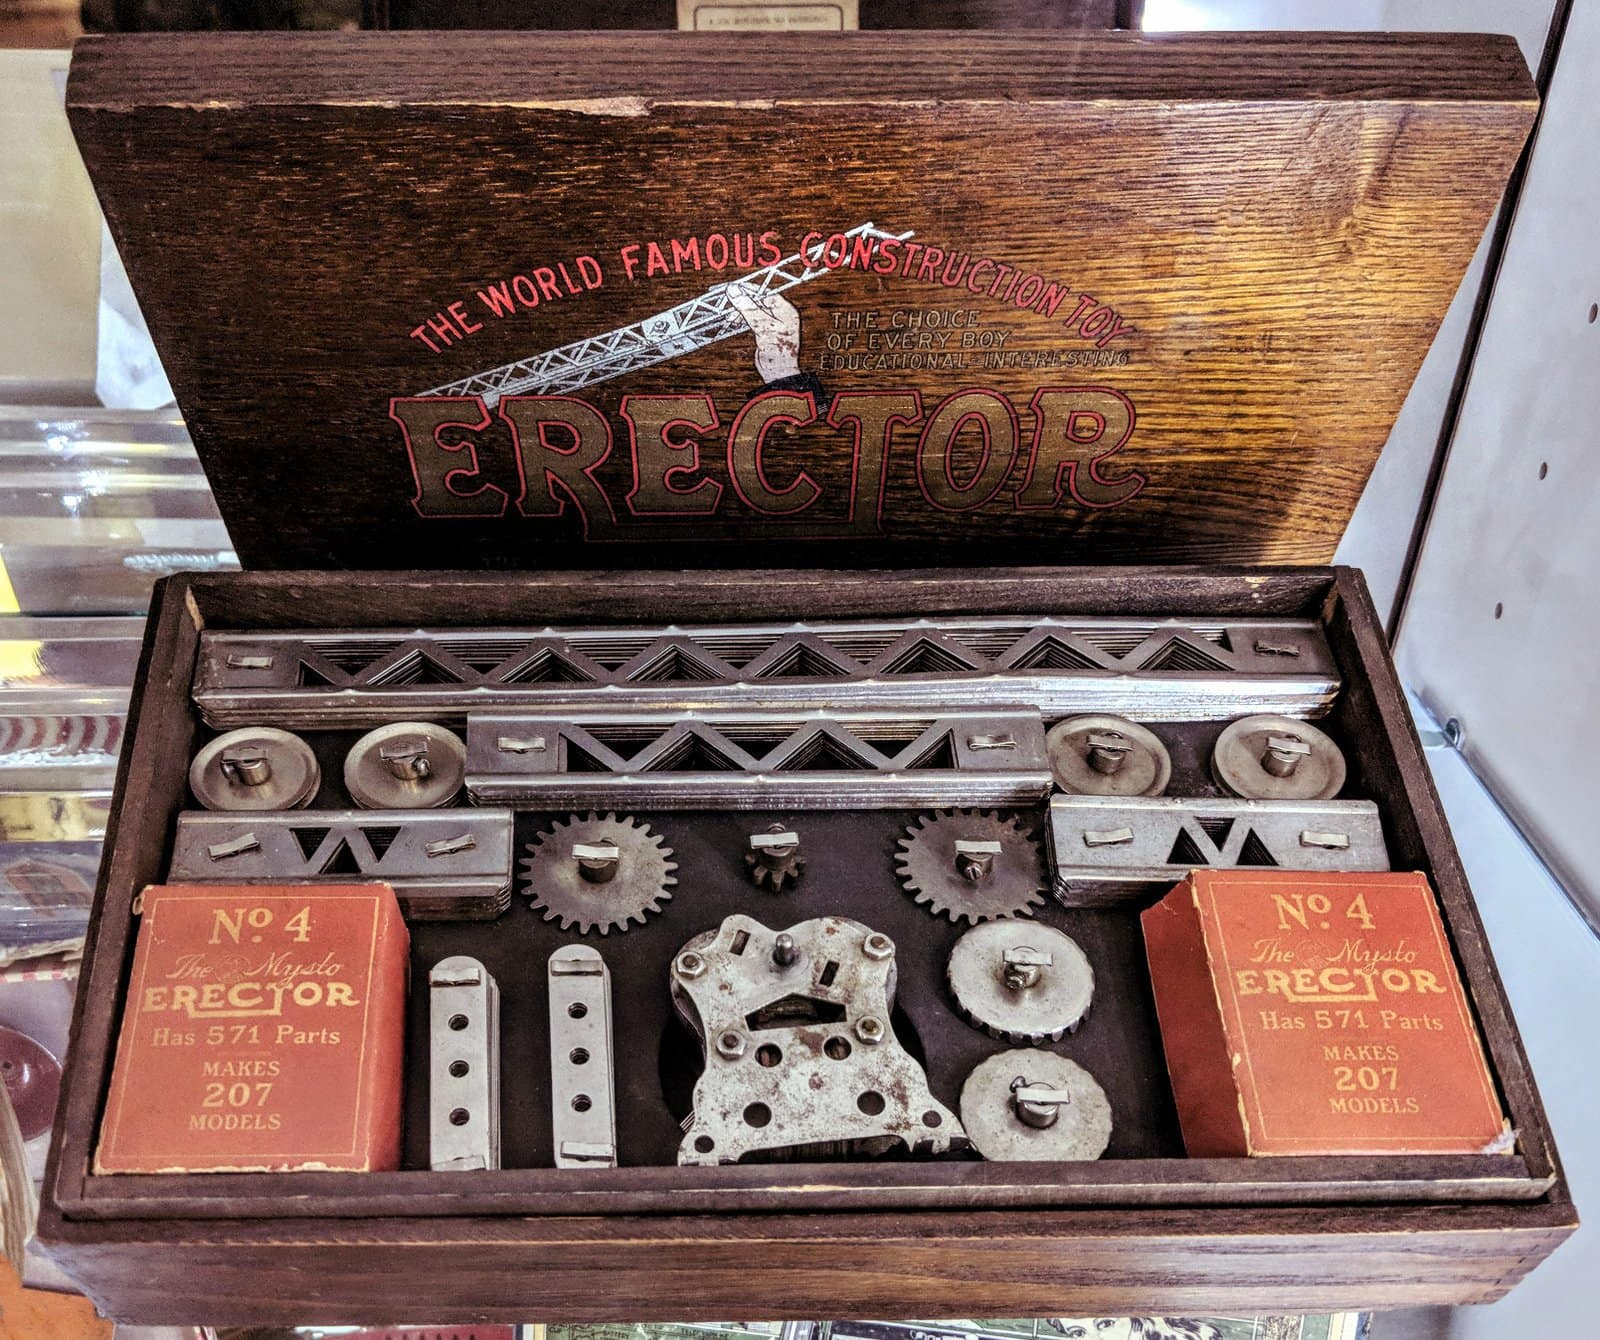 Early Erector Set toy in wooden box